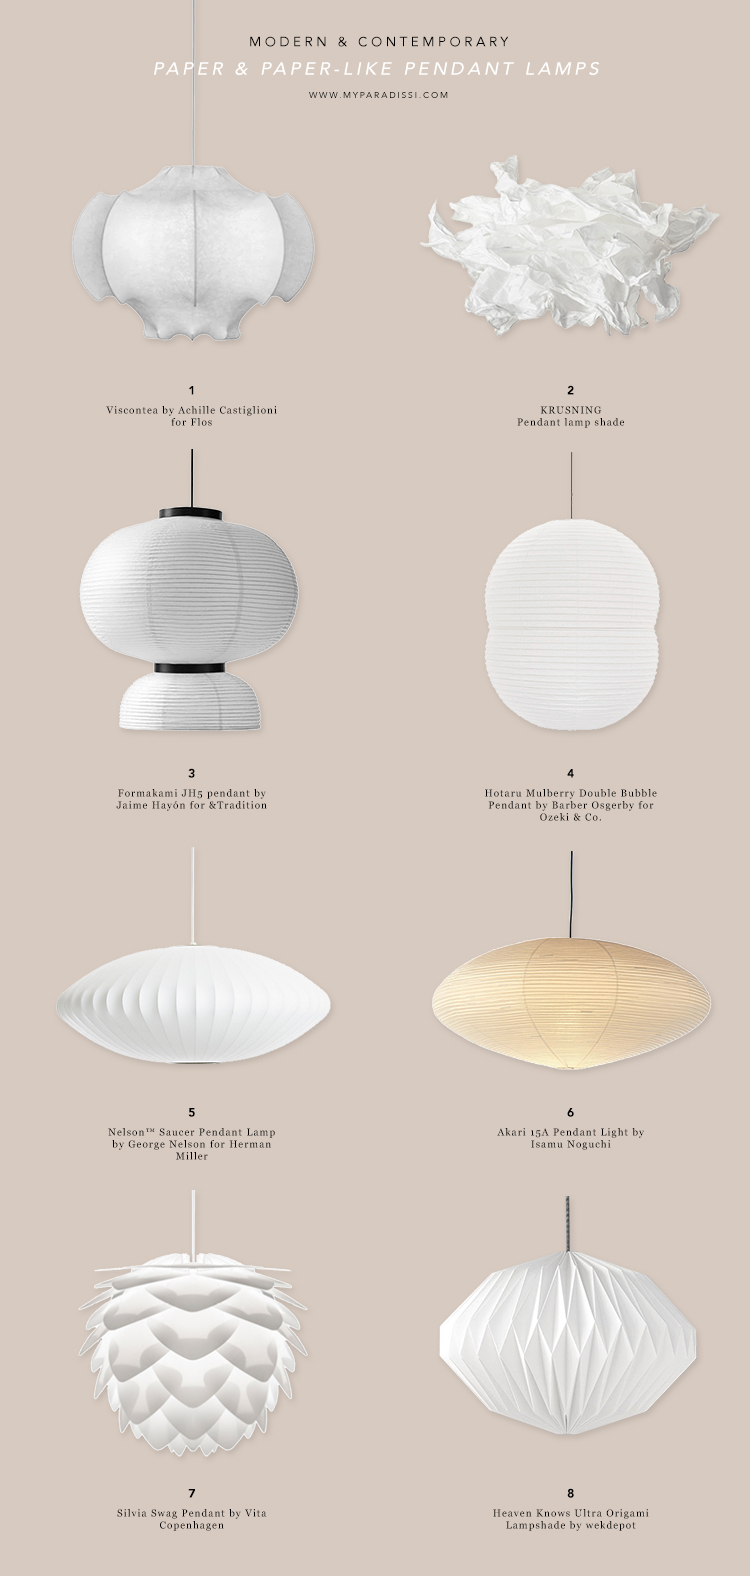 Current favorites paper paper like pendant lamps my paradissi contemporary ceiling lighting modern ceiling lighting designer ceiling lamps paper lantern pendant lamps mozeypictures Images